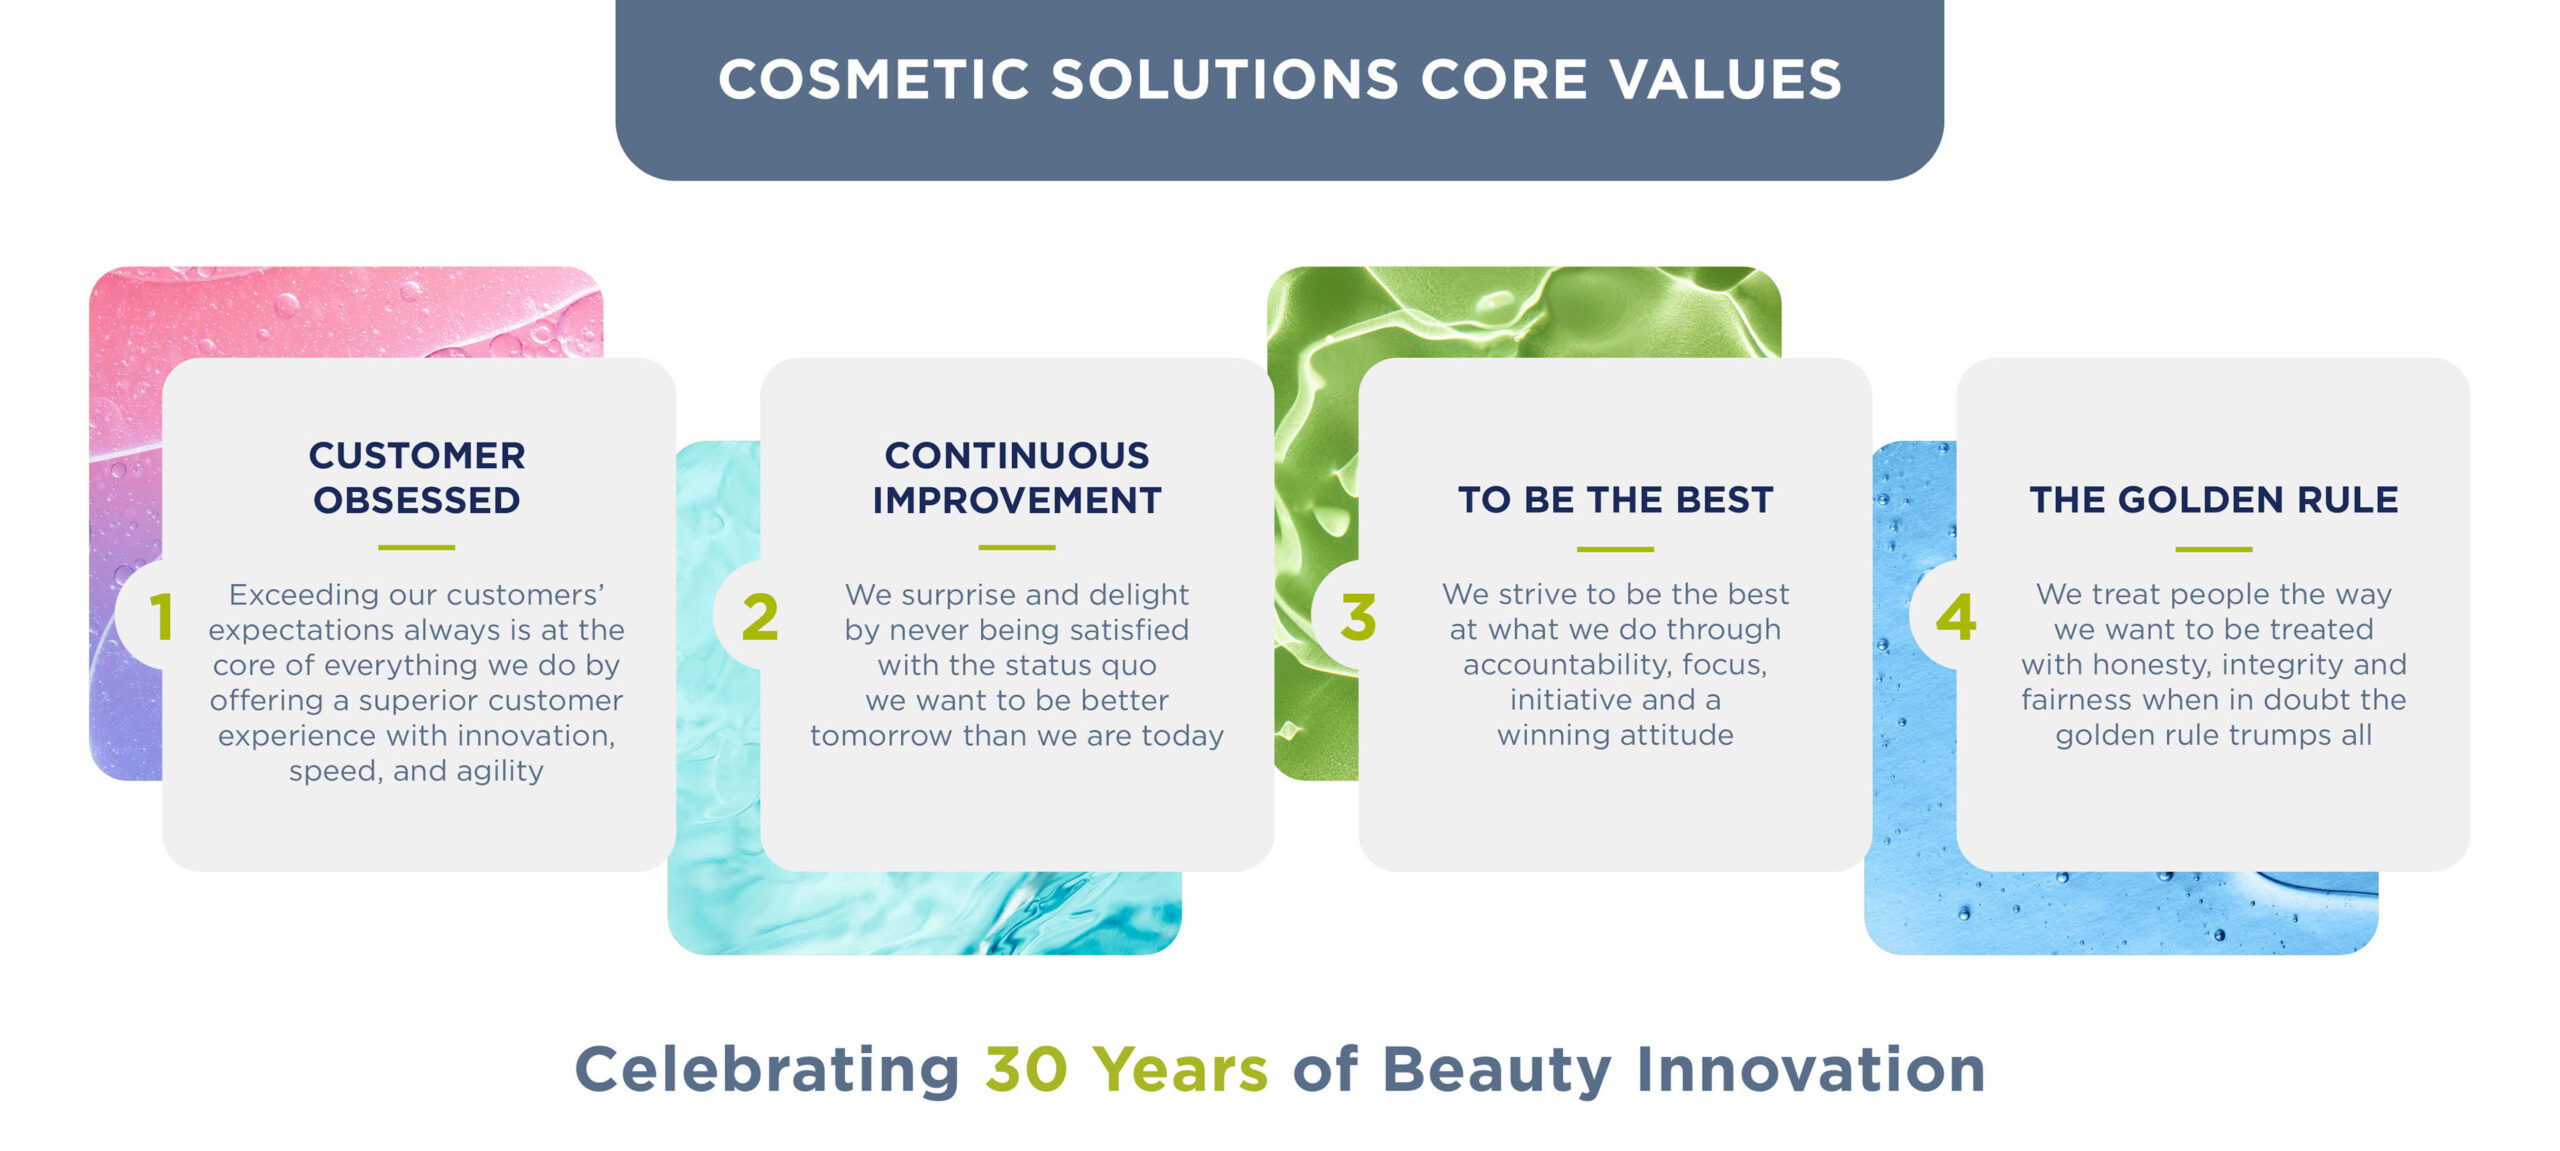 Cosmetic Solutions Core Values image